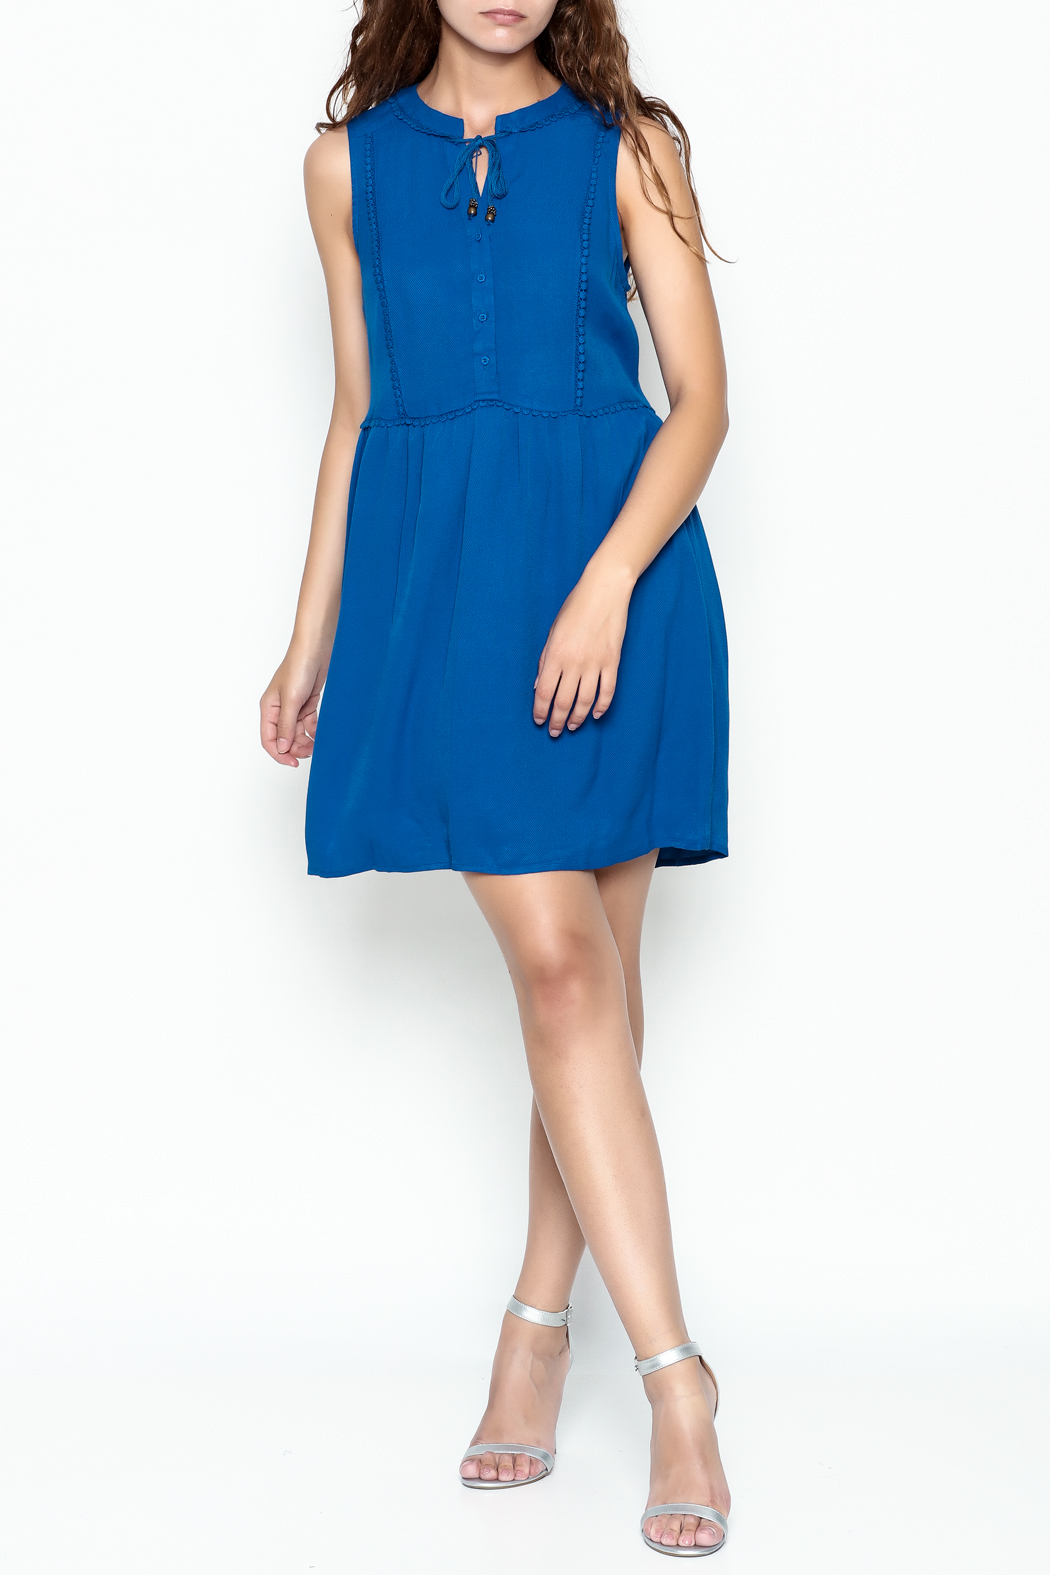 Skies Are Blue Blue Button Up Dress - Side Cropped Image